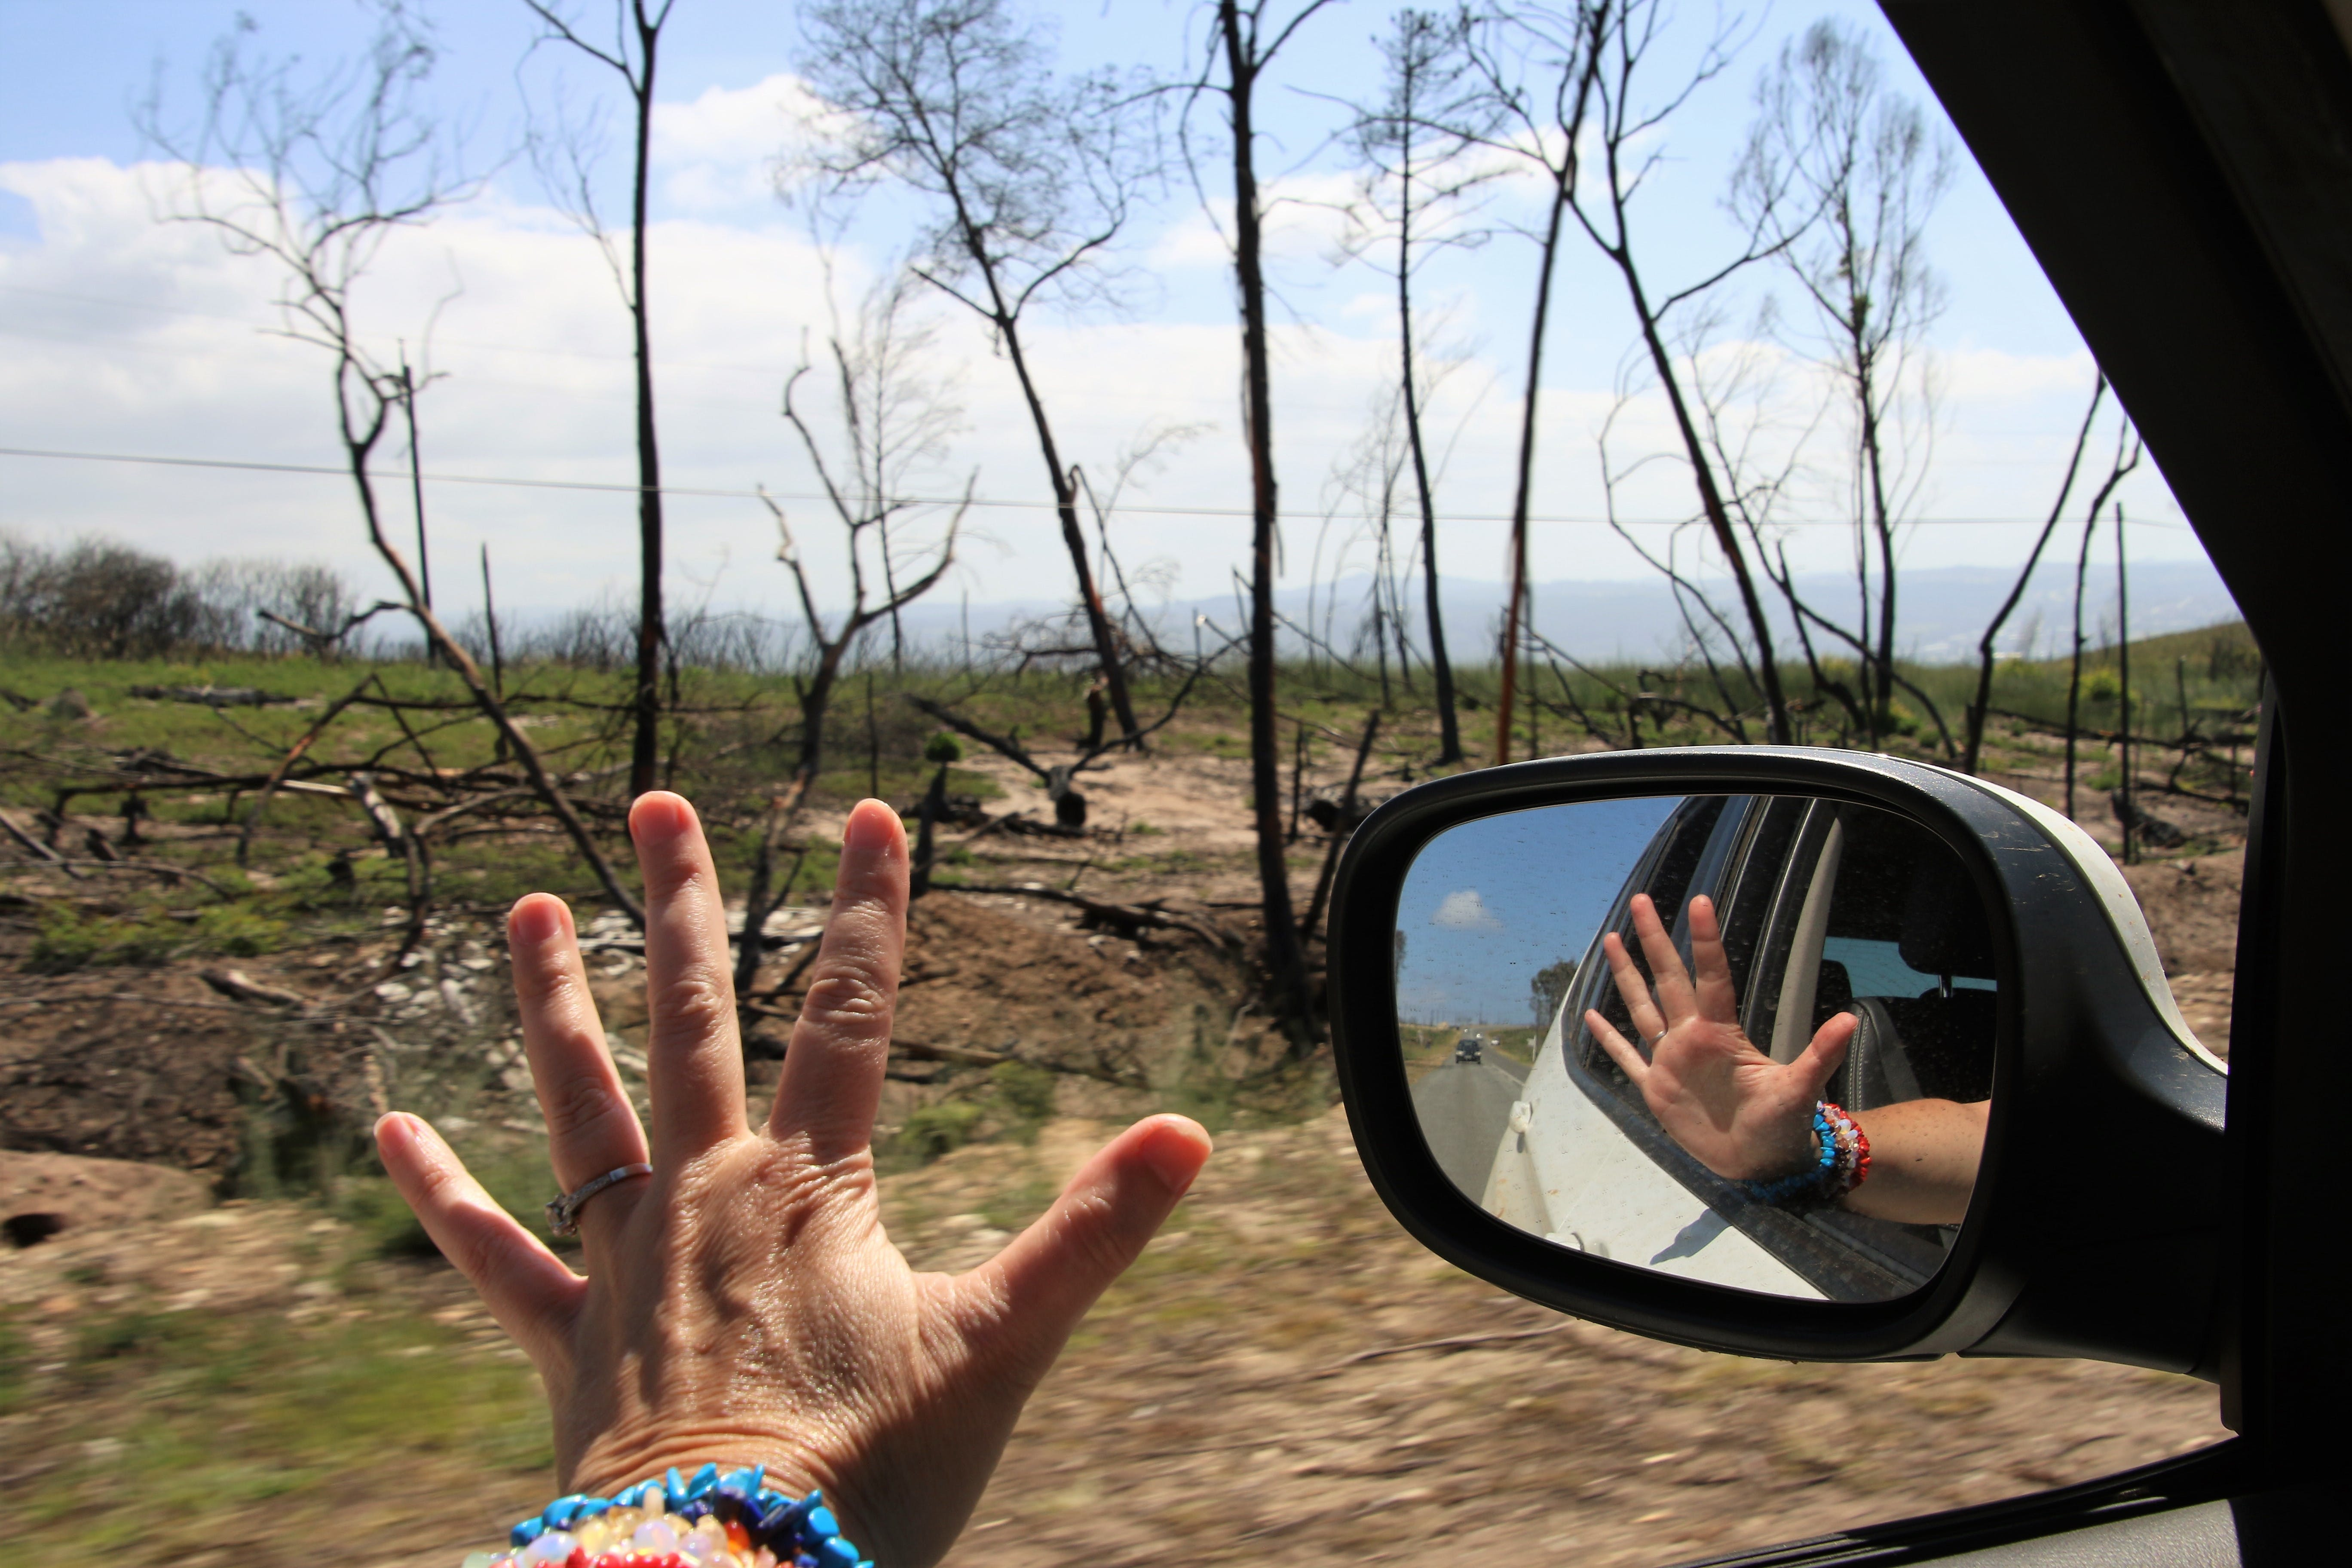 Free stock photo of nature, hand, car, fire